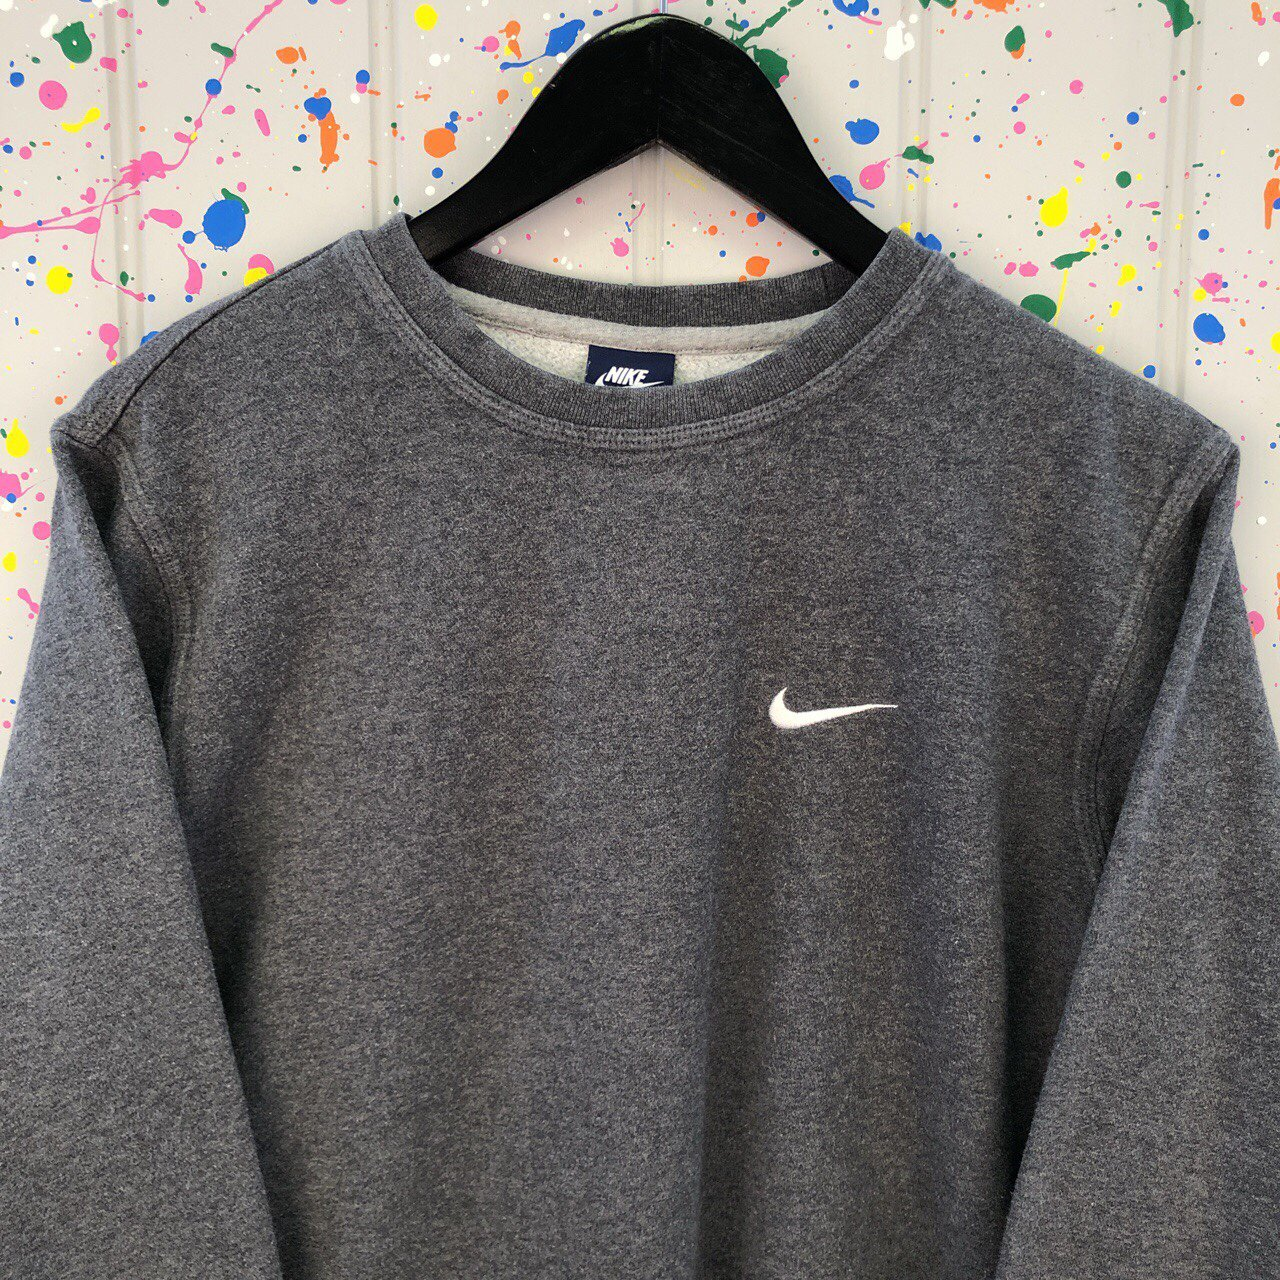 Vintage NIKE Grey Sweater • Great Vintage Condition • Swoosh - Depop 8d8a8dfae